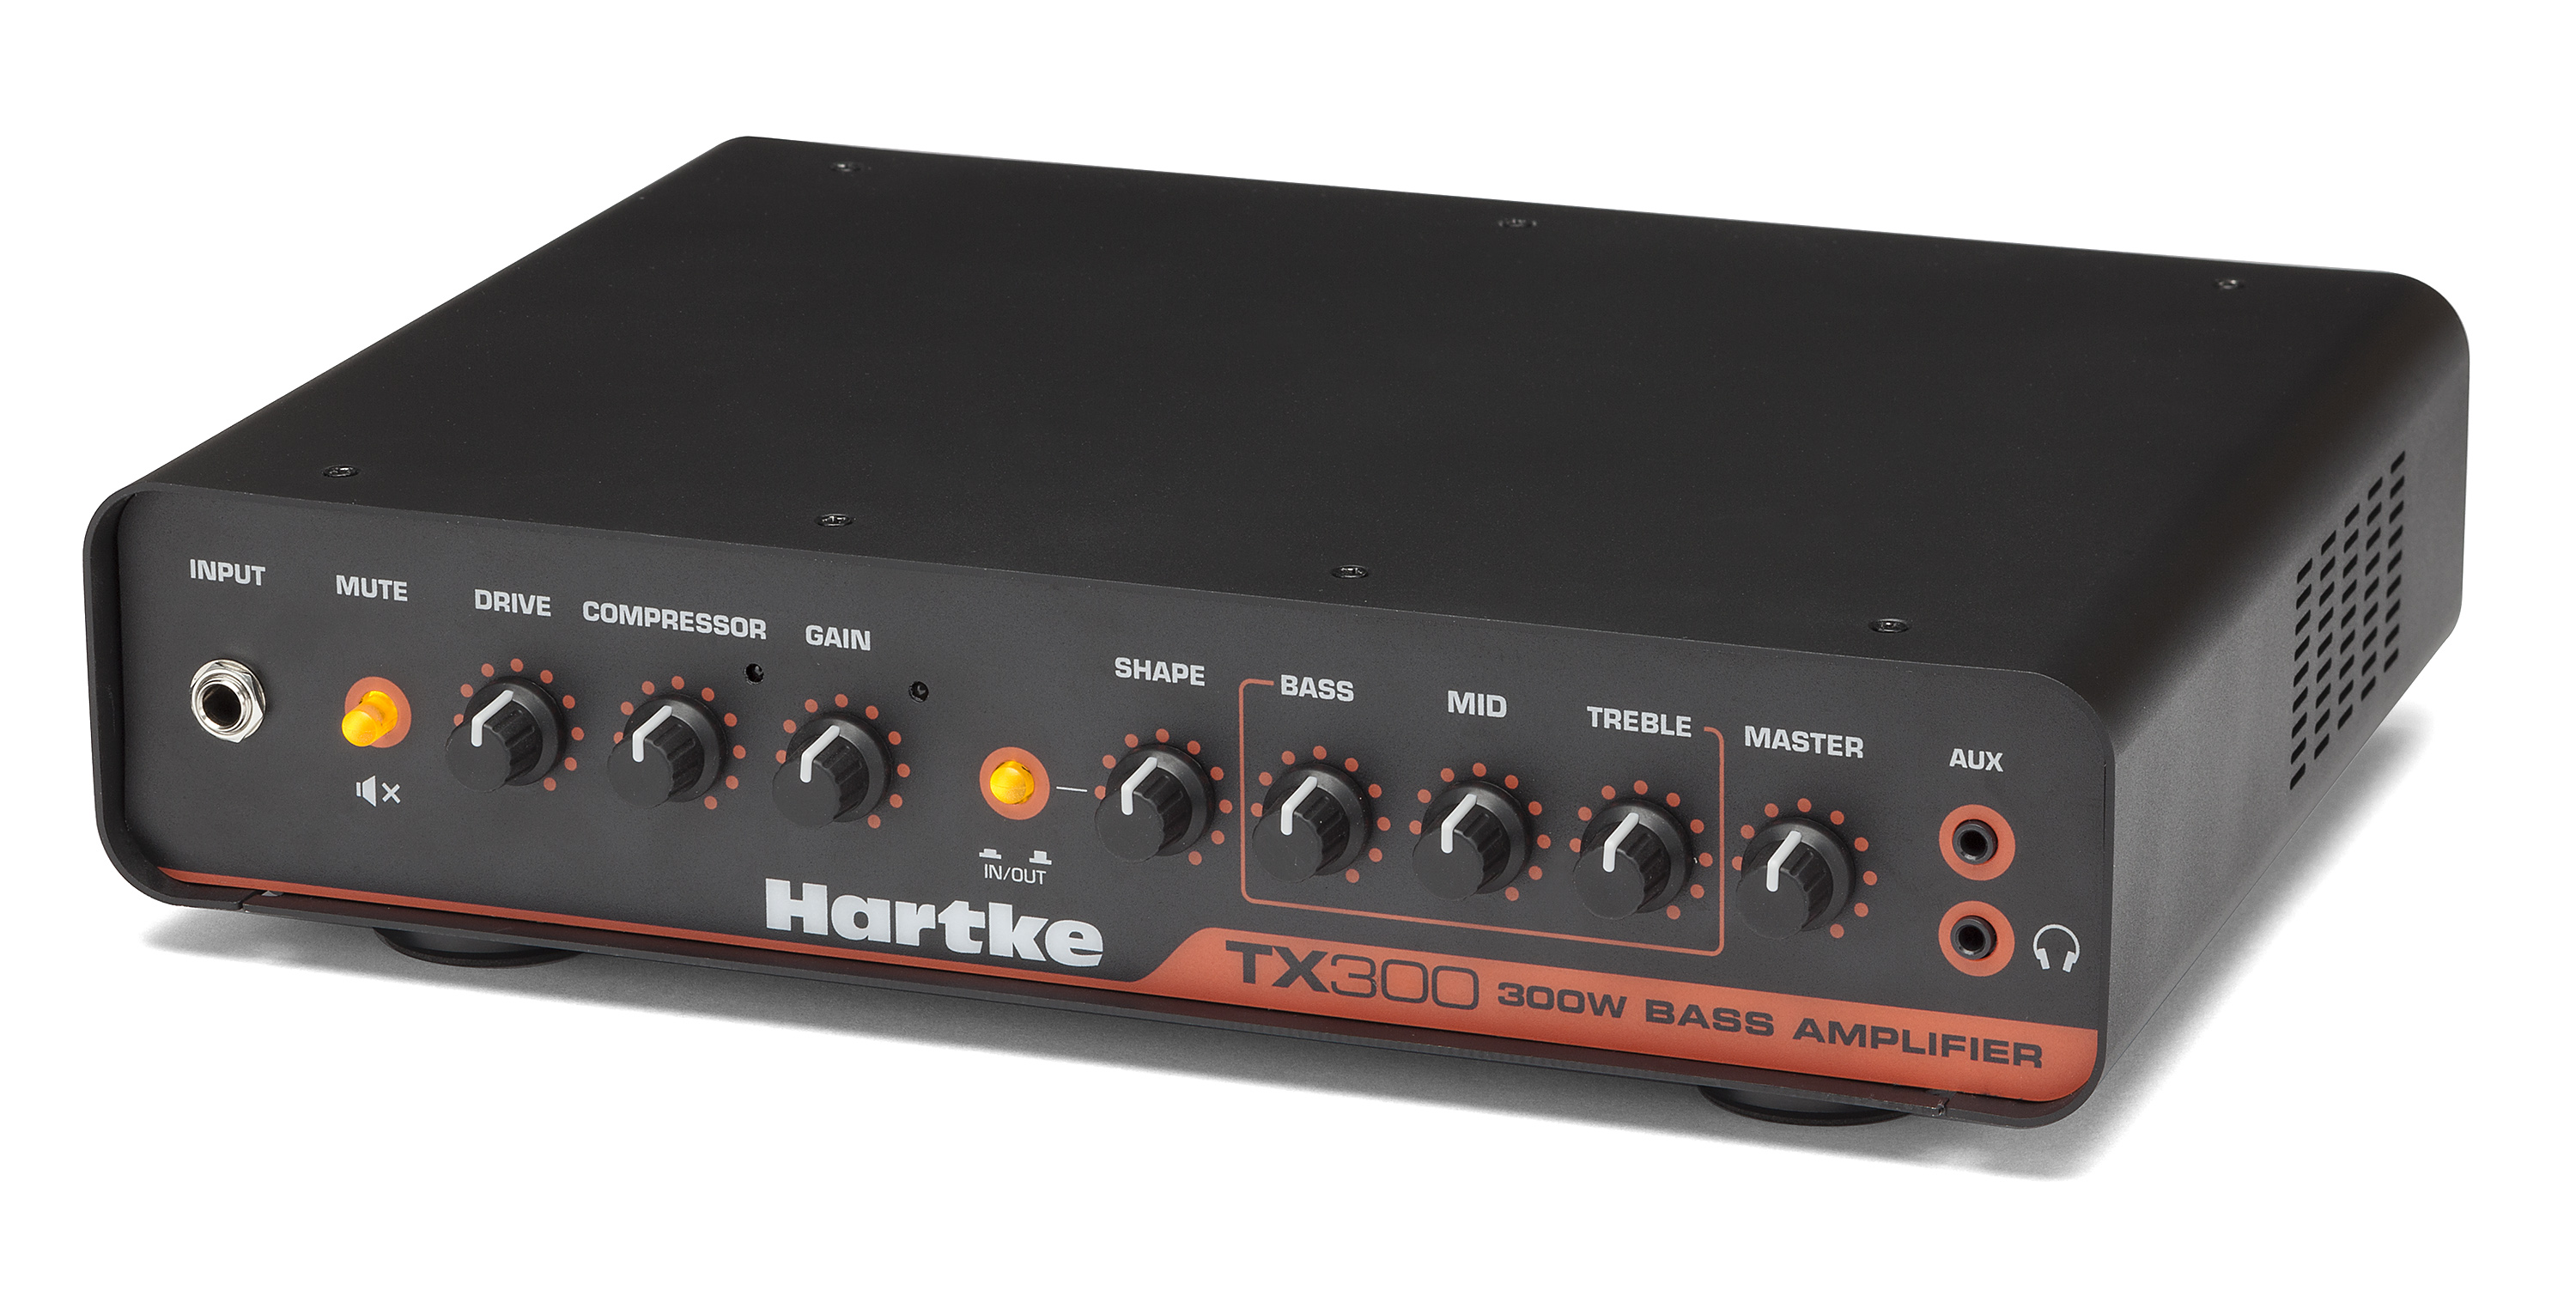 Hartke Tx300 The Birth Of An Amplifier View Larger